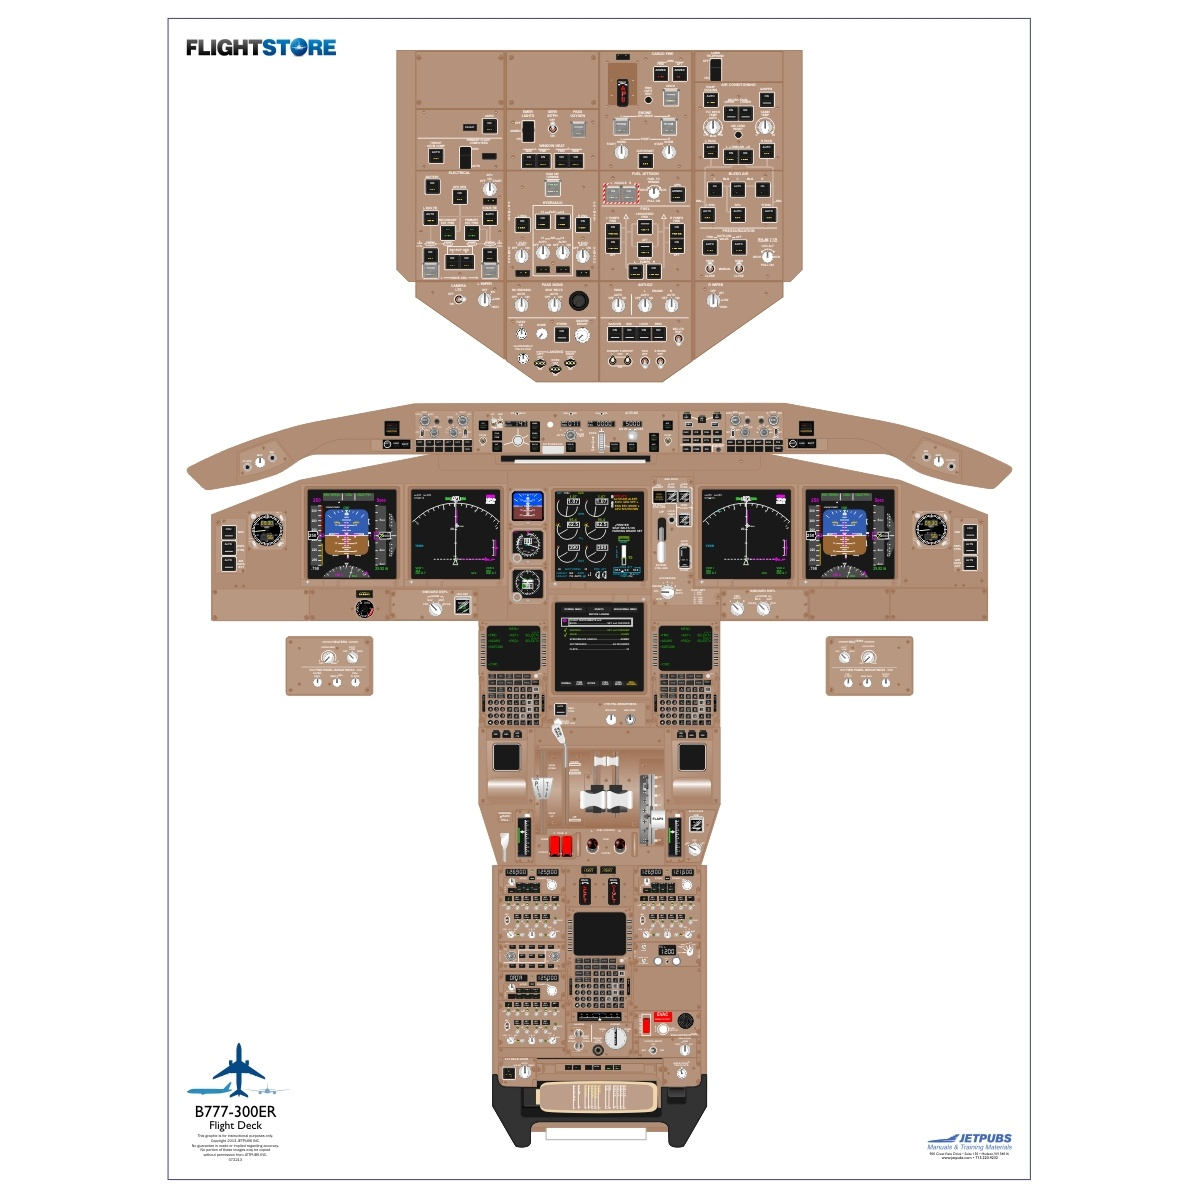 Aviation cockpit training posters online « Airplane Games - Best